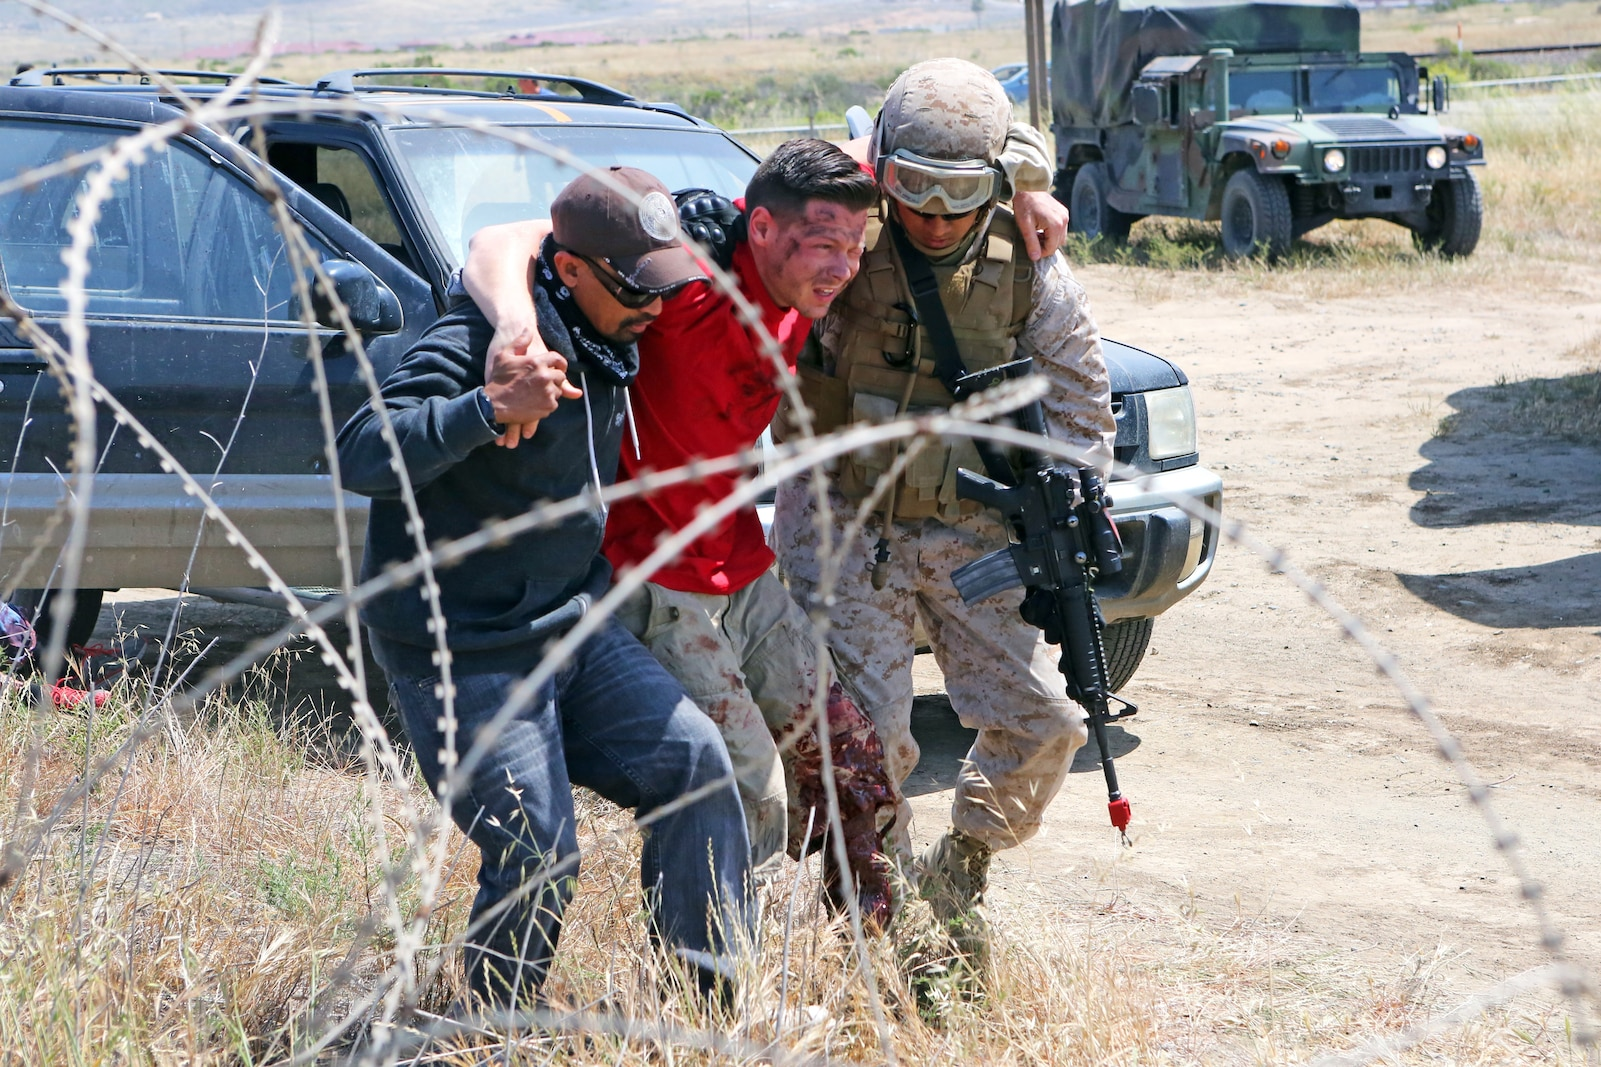 """A Marine with Combat Logistics Battalion 15, 1st Marine Logistics Group, assists """"wounded locals"""" in receiving medical aid during a mass casualty event as part of the battalion's first field training exercise of the year at Red Beach aboard Camp Pendleton, Calif., May 6-10, in preparation for pre-deployment training with the 15th Marine Expeditionary Unit this fall. This event employed the use of role players from SpecPro Technical Services aboard base who used make up to present the service members with authentic-looking injuries. The exercise allowed CLB-15 to practice procedures and protocols they will apply while acting the 15th MEU's primary logistical support element during its deployment early next year. Providing this  support to the MEU allows it to focus on its chief objective as a crisis response force, ready to respond to disaster or humanitarian relief operations."""